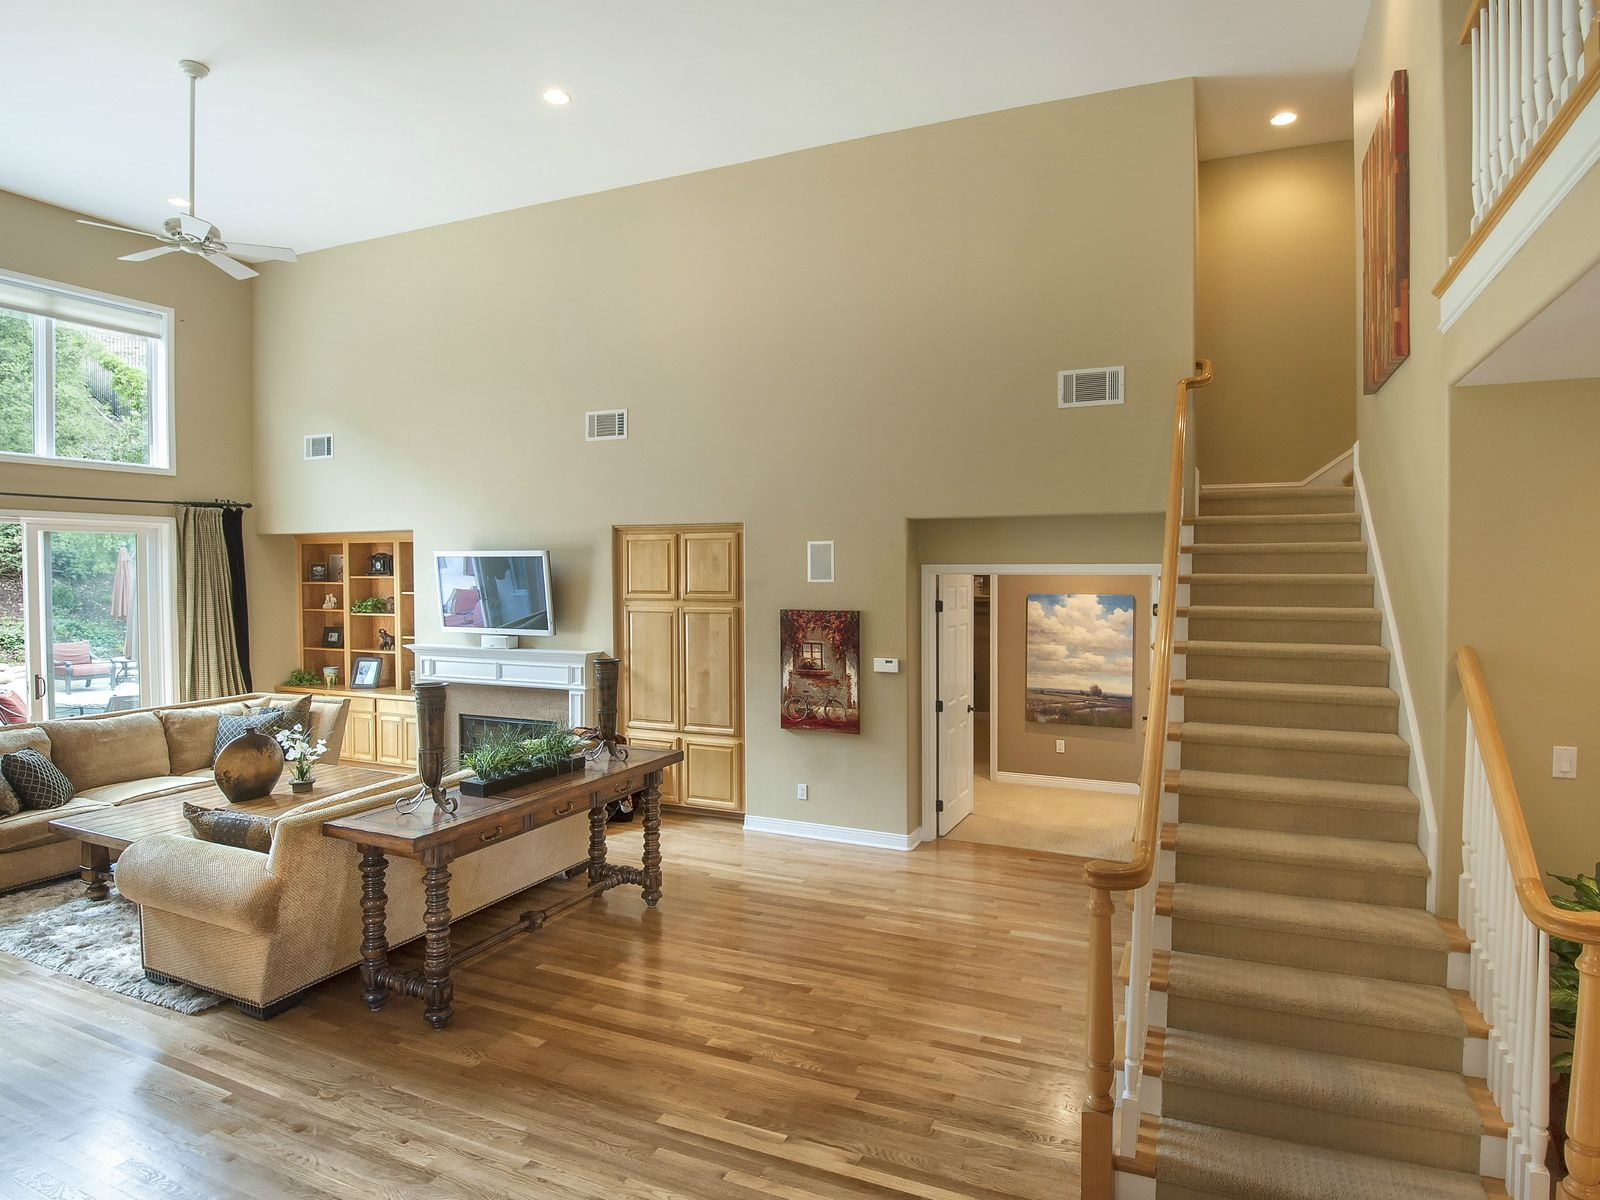 Gated 4 Bedroom with Main Floor Master